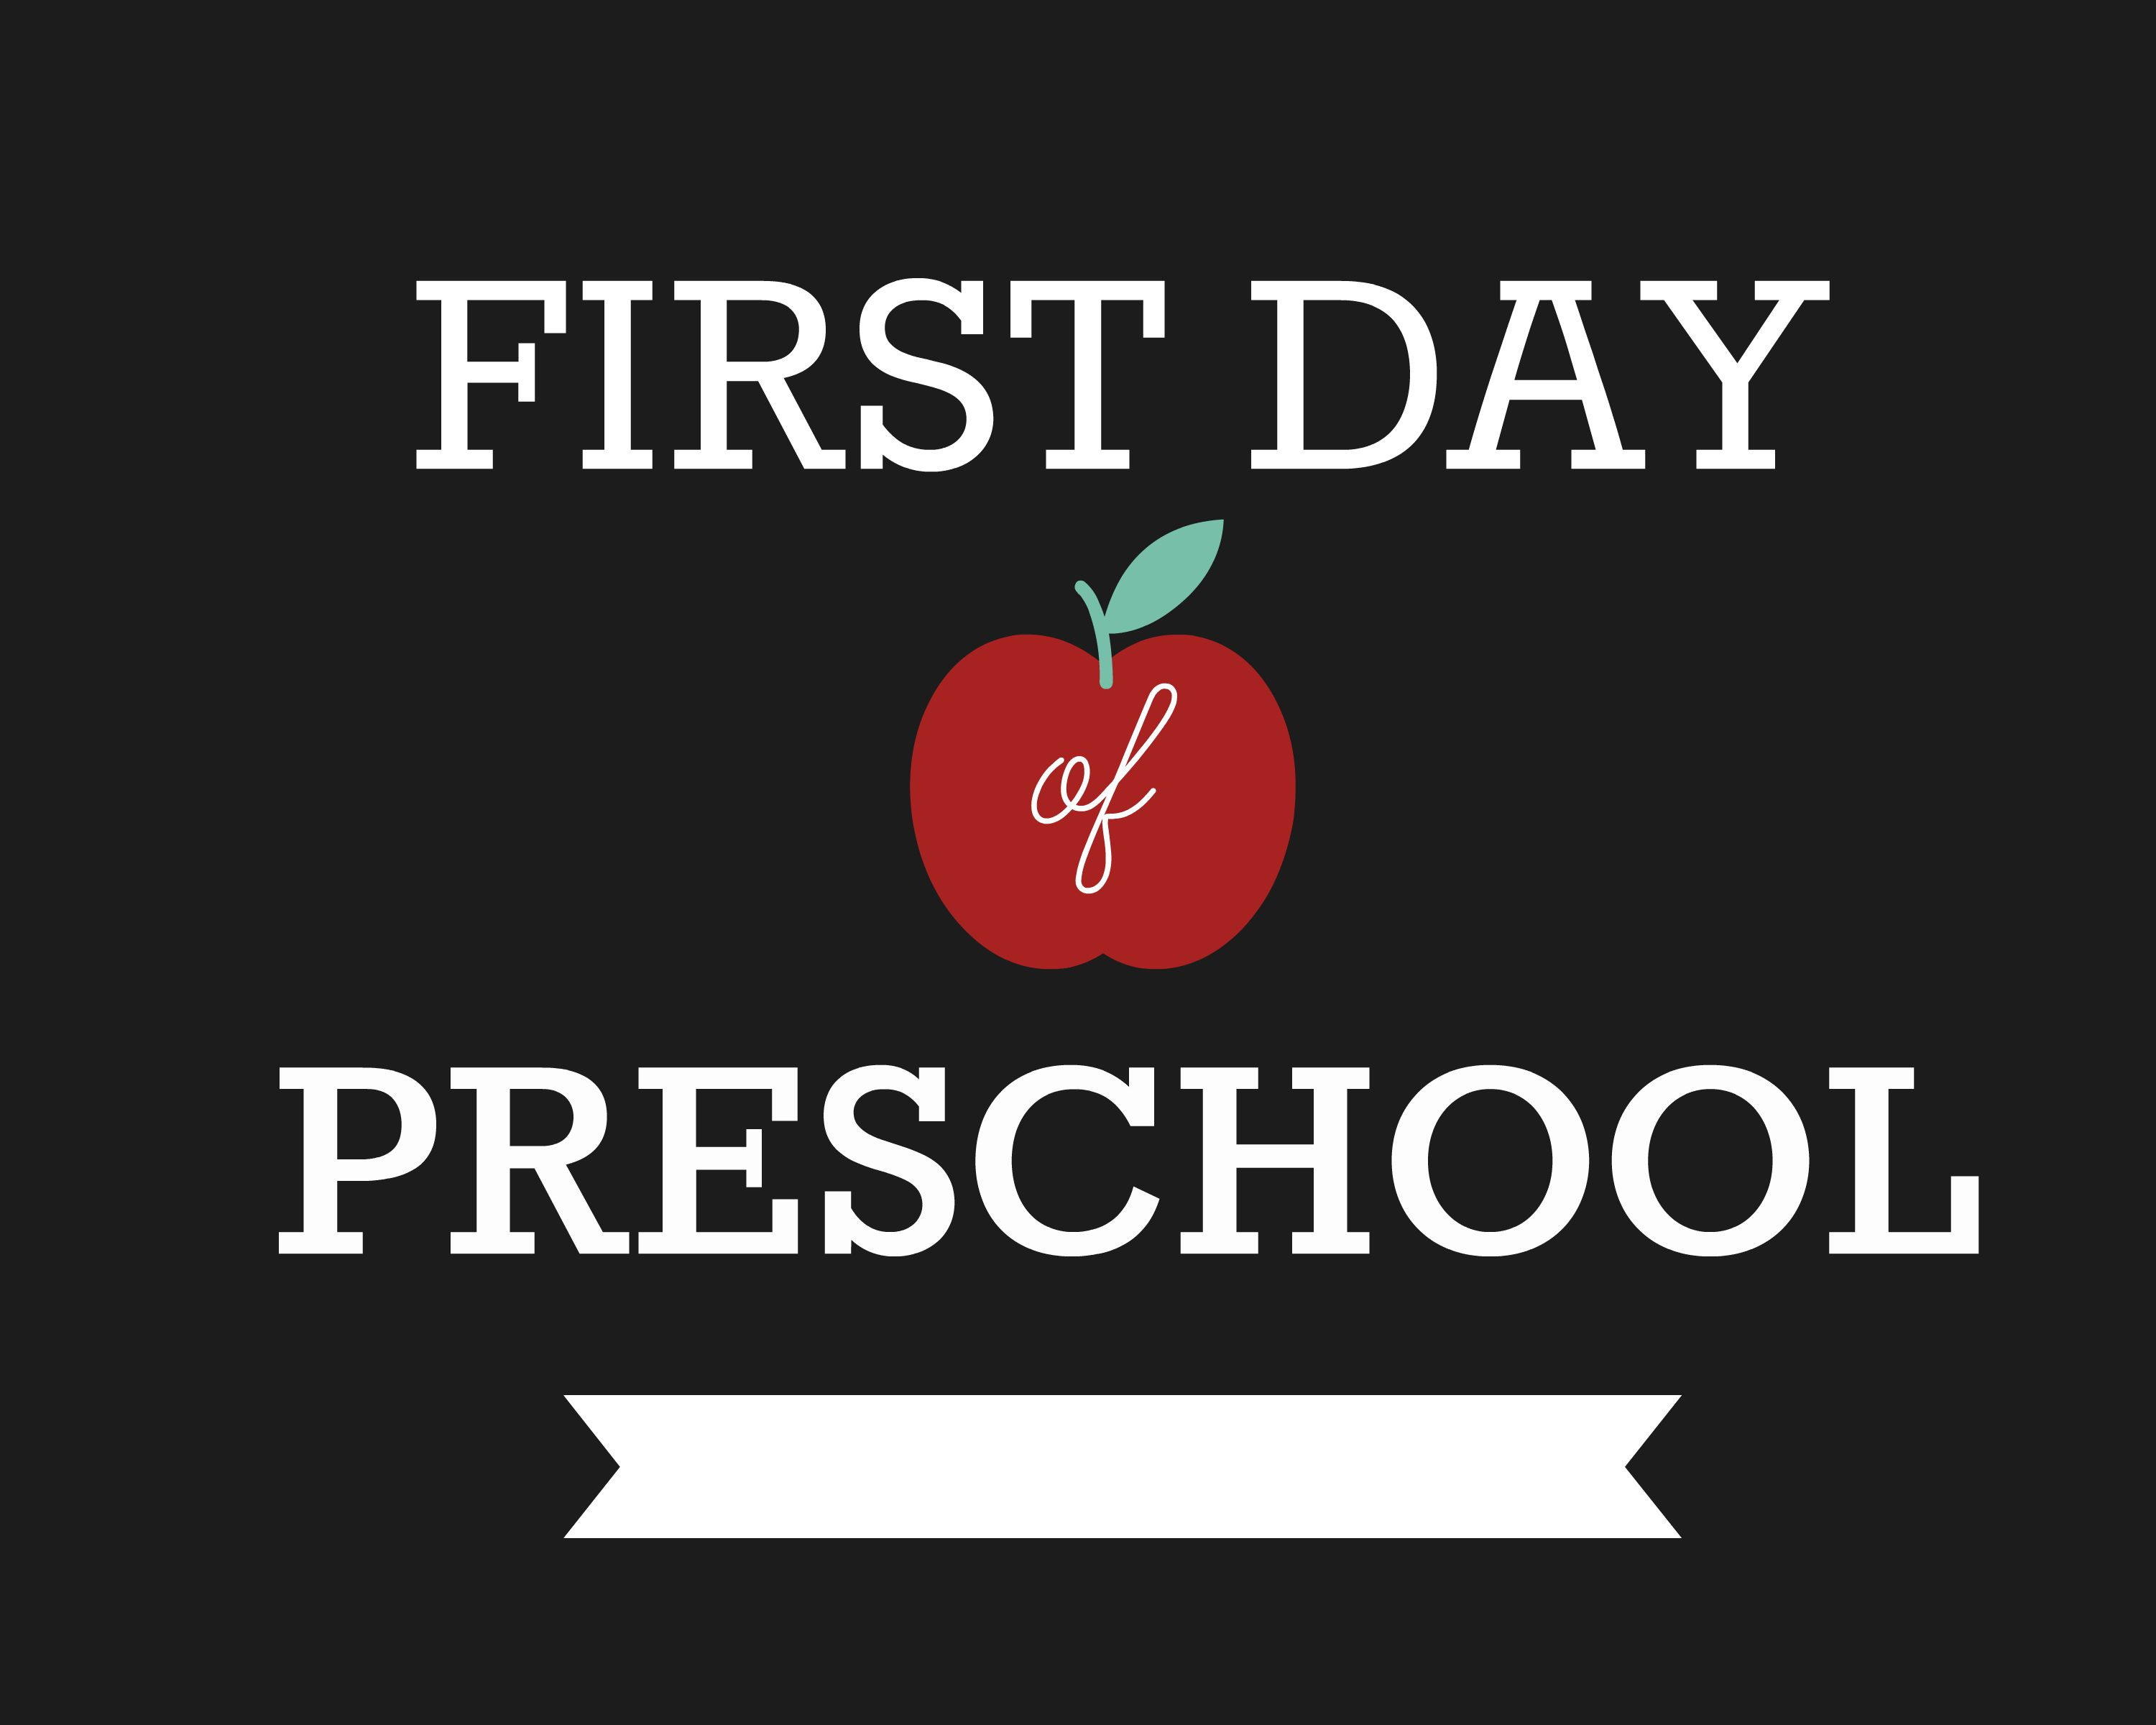 First Day of School Signs for Preschool